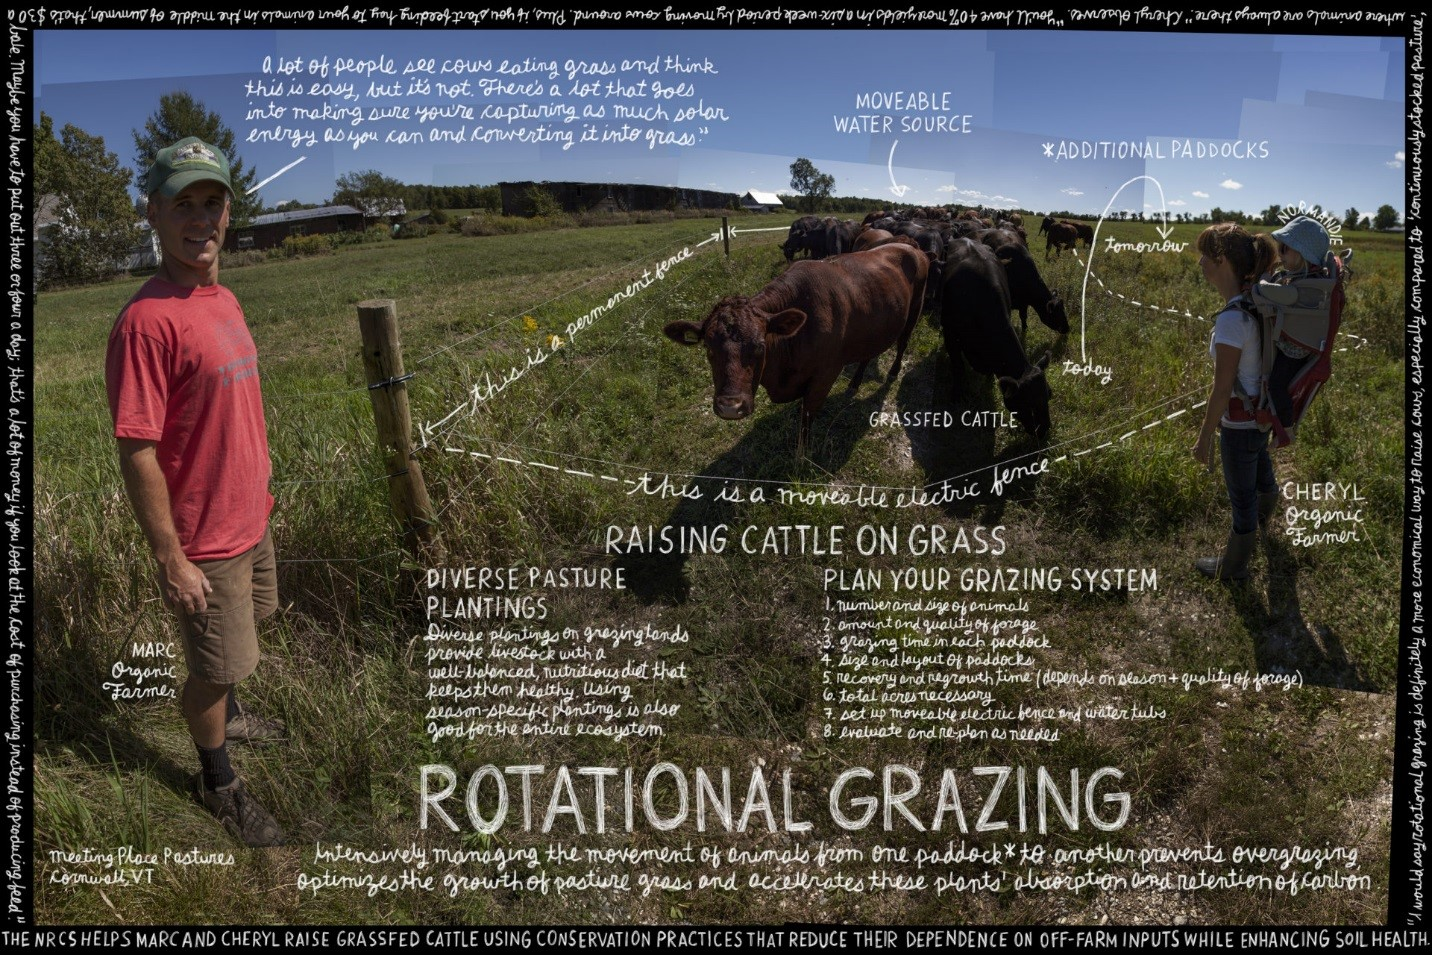 Rotational grazing image of cattle